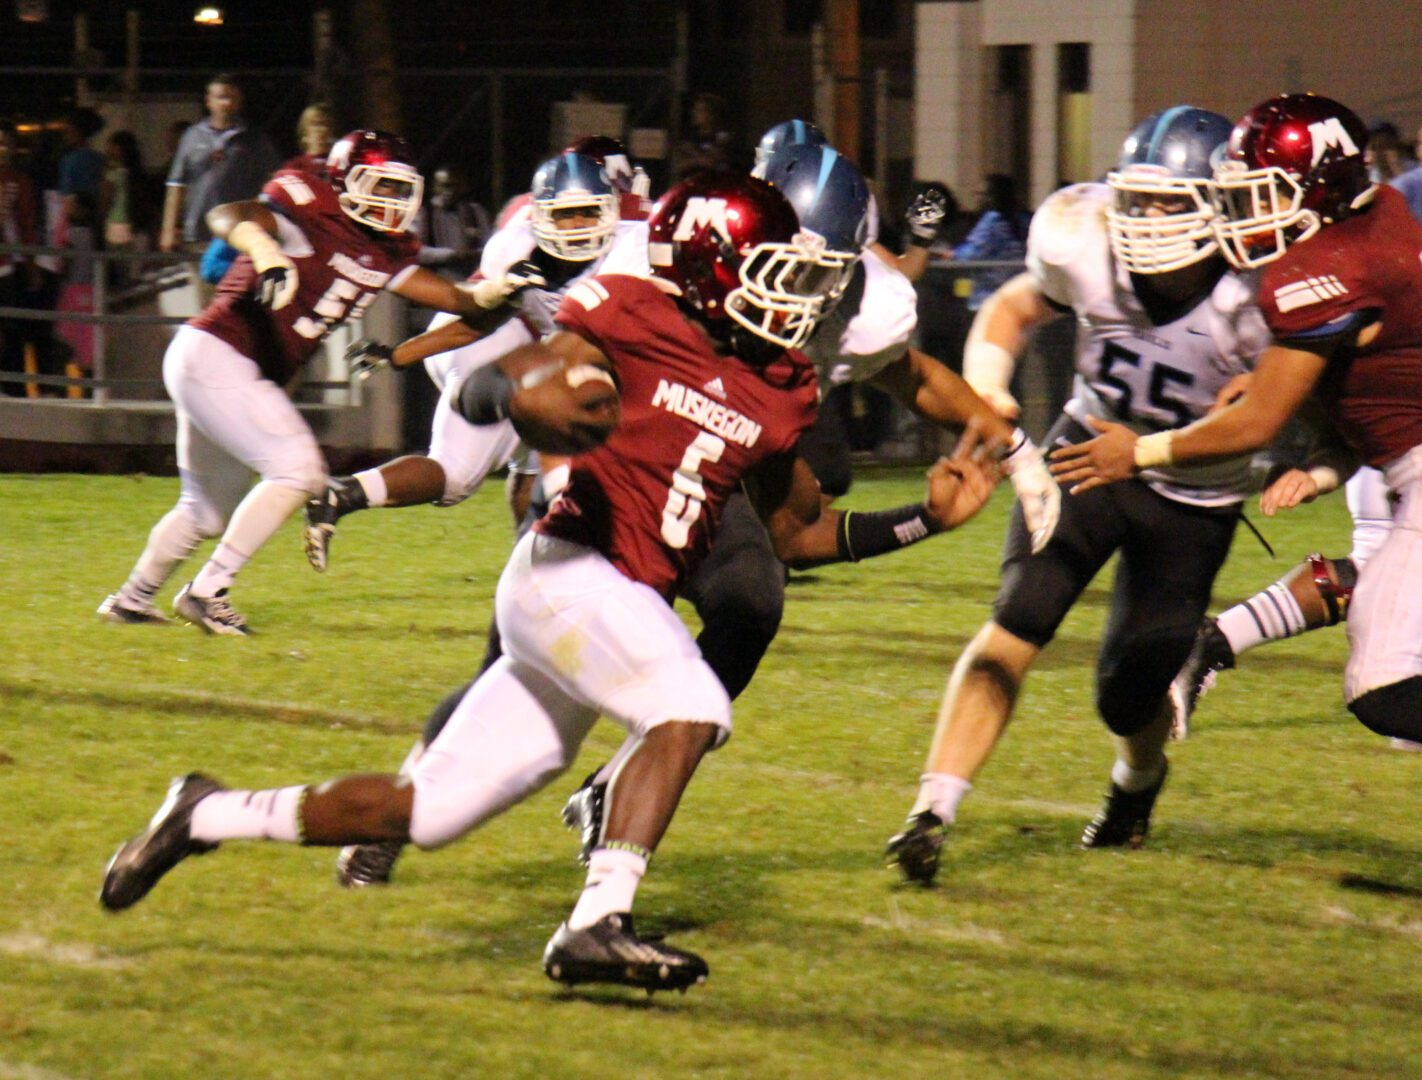 Muskegon overcomes turnovers, rallies in second half to beat Grand Rapids Christian